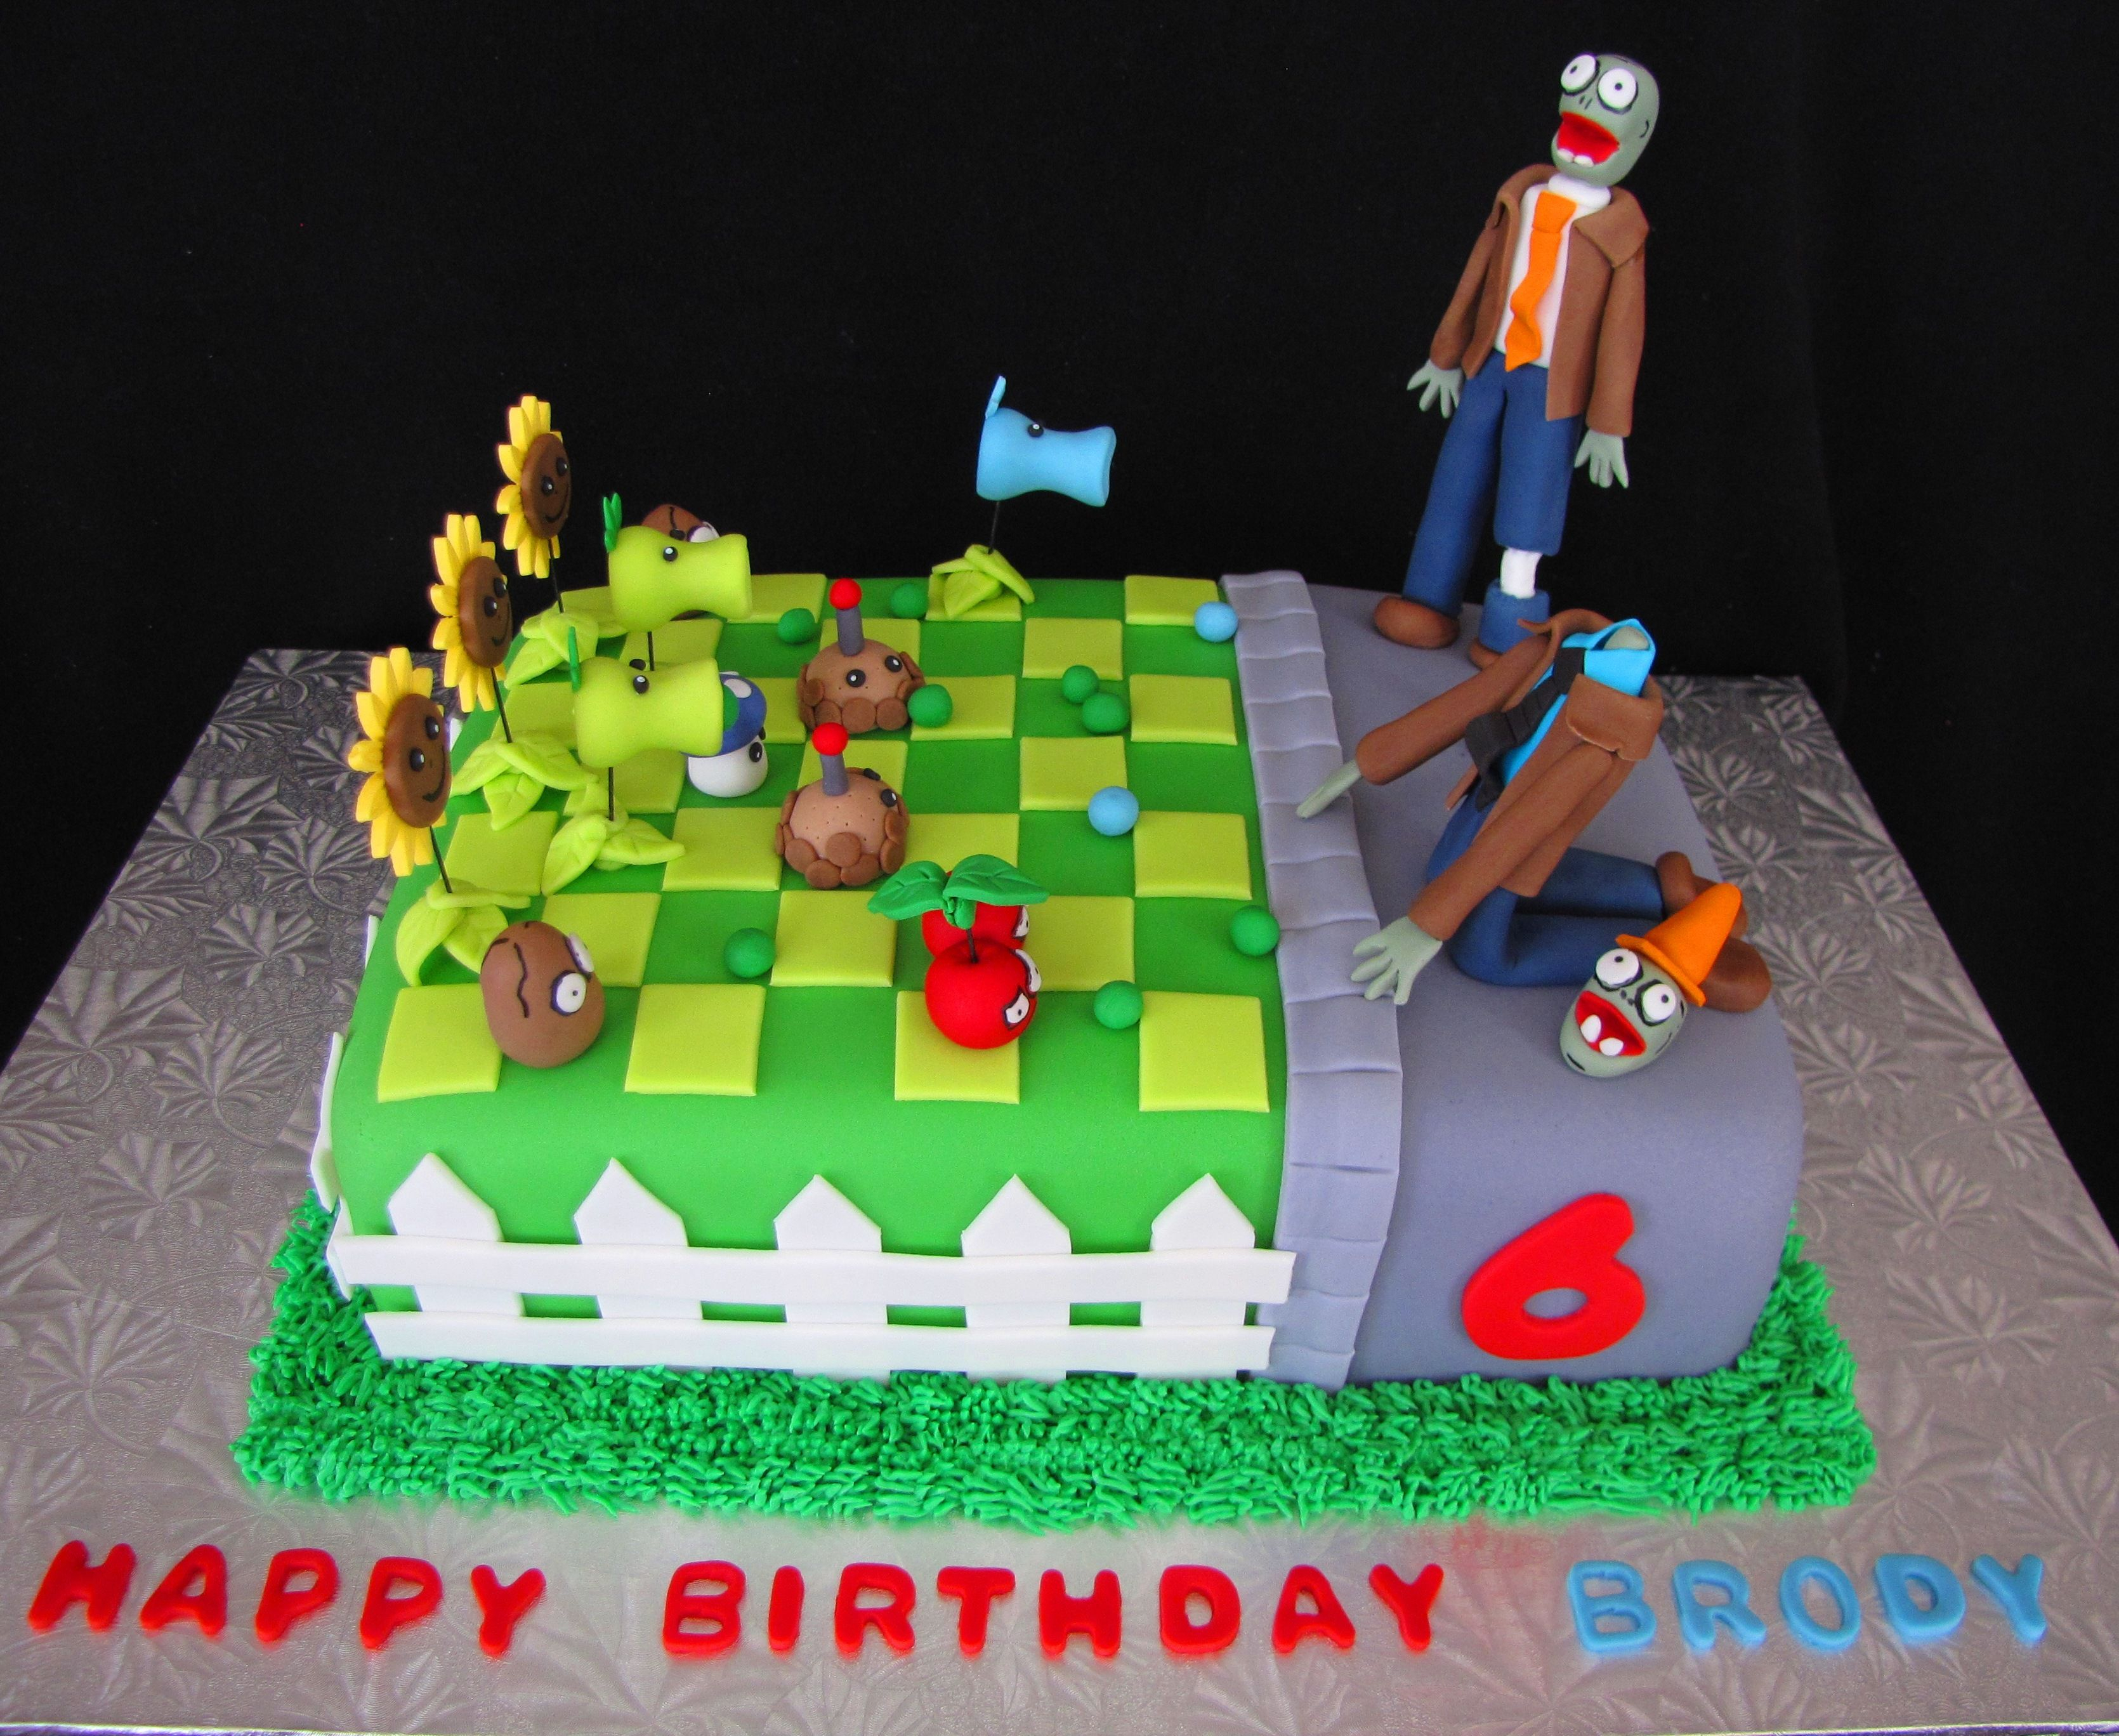 Plants Vs Zombies Birthday Cake Plants Vs Zombies Bday Cake For Me I Want Pinterest